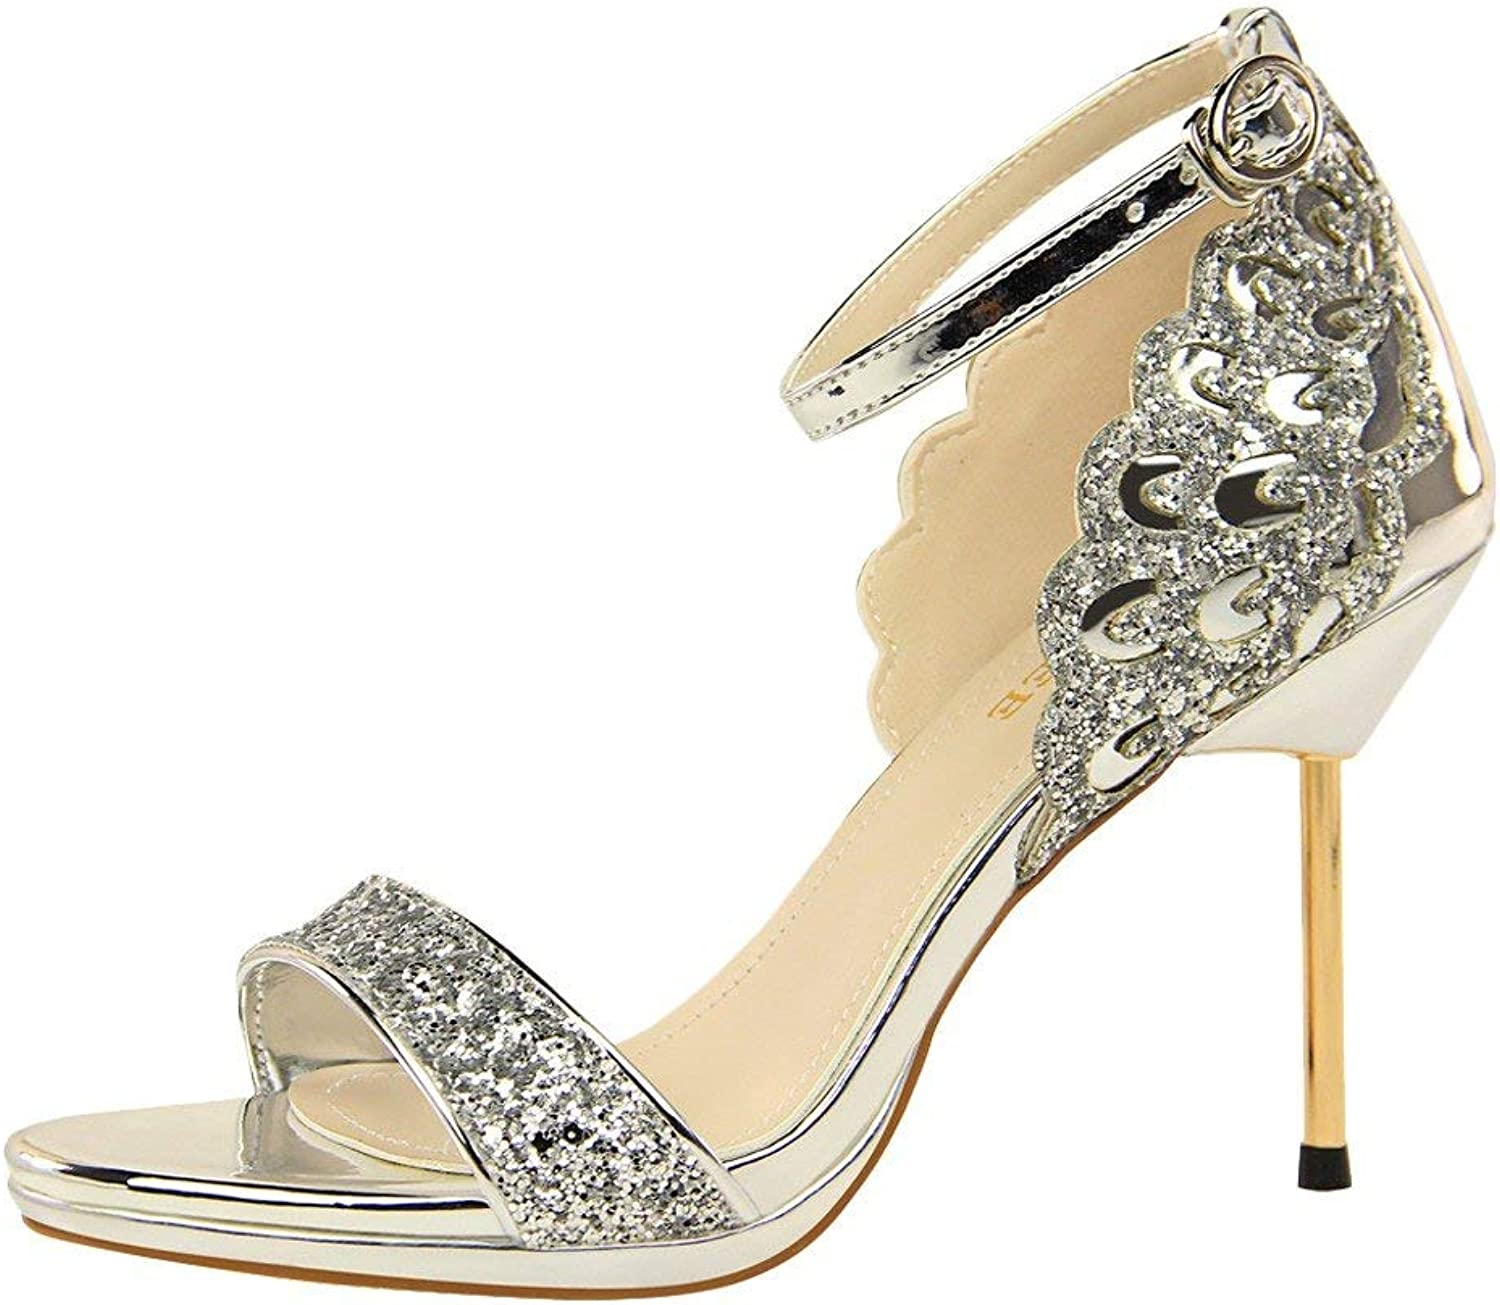 Gcanwea Women's Stiletto High Heel Open Toe Dress Heeled Sandals Summer Fashion Breathable Ladies Elegant Rubber Sole Sequins Skinny Sexy Comfortable White 5 M US Stiletto Sandals